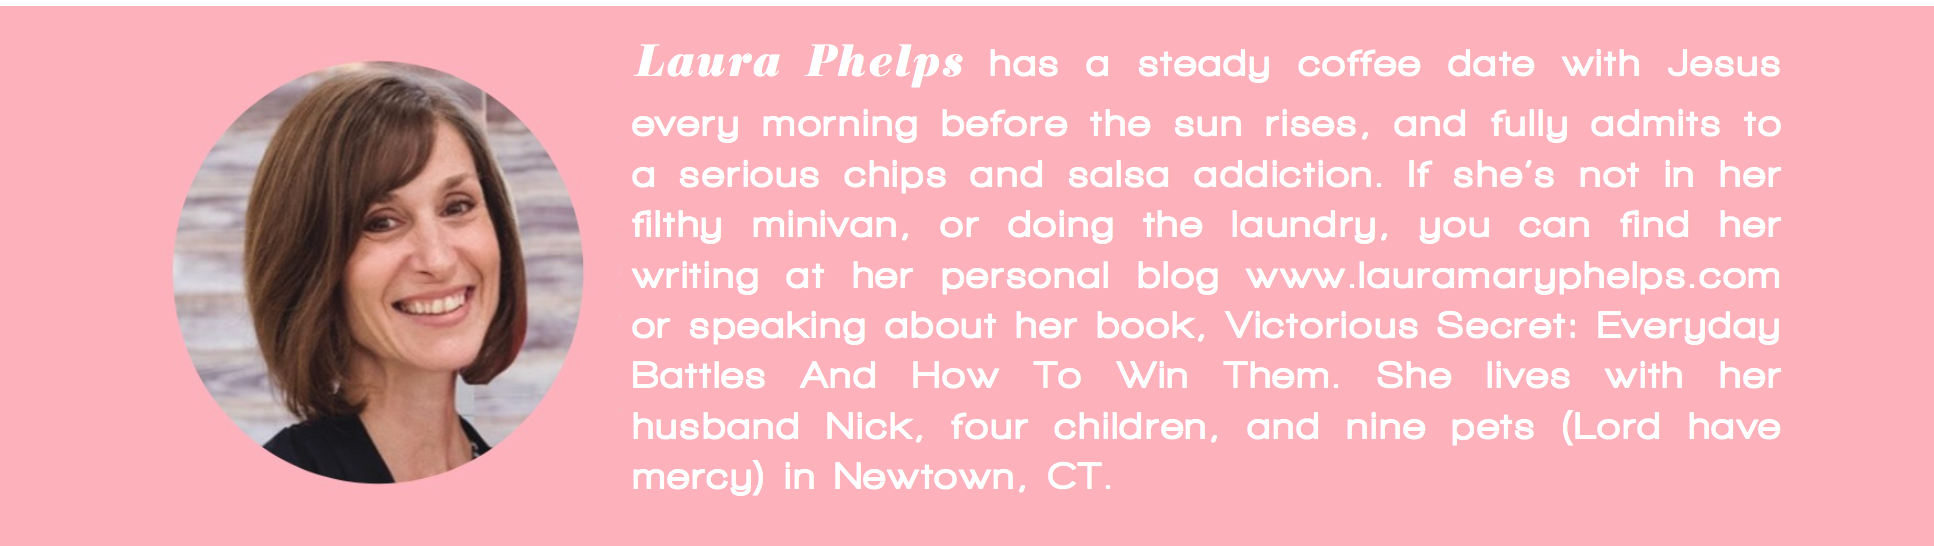 Laura Phelps author bio